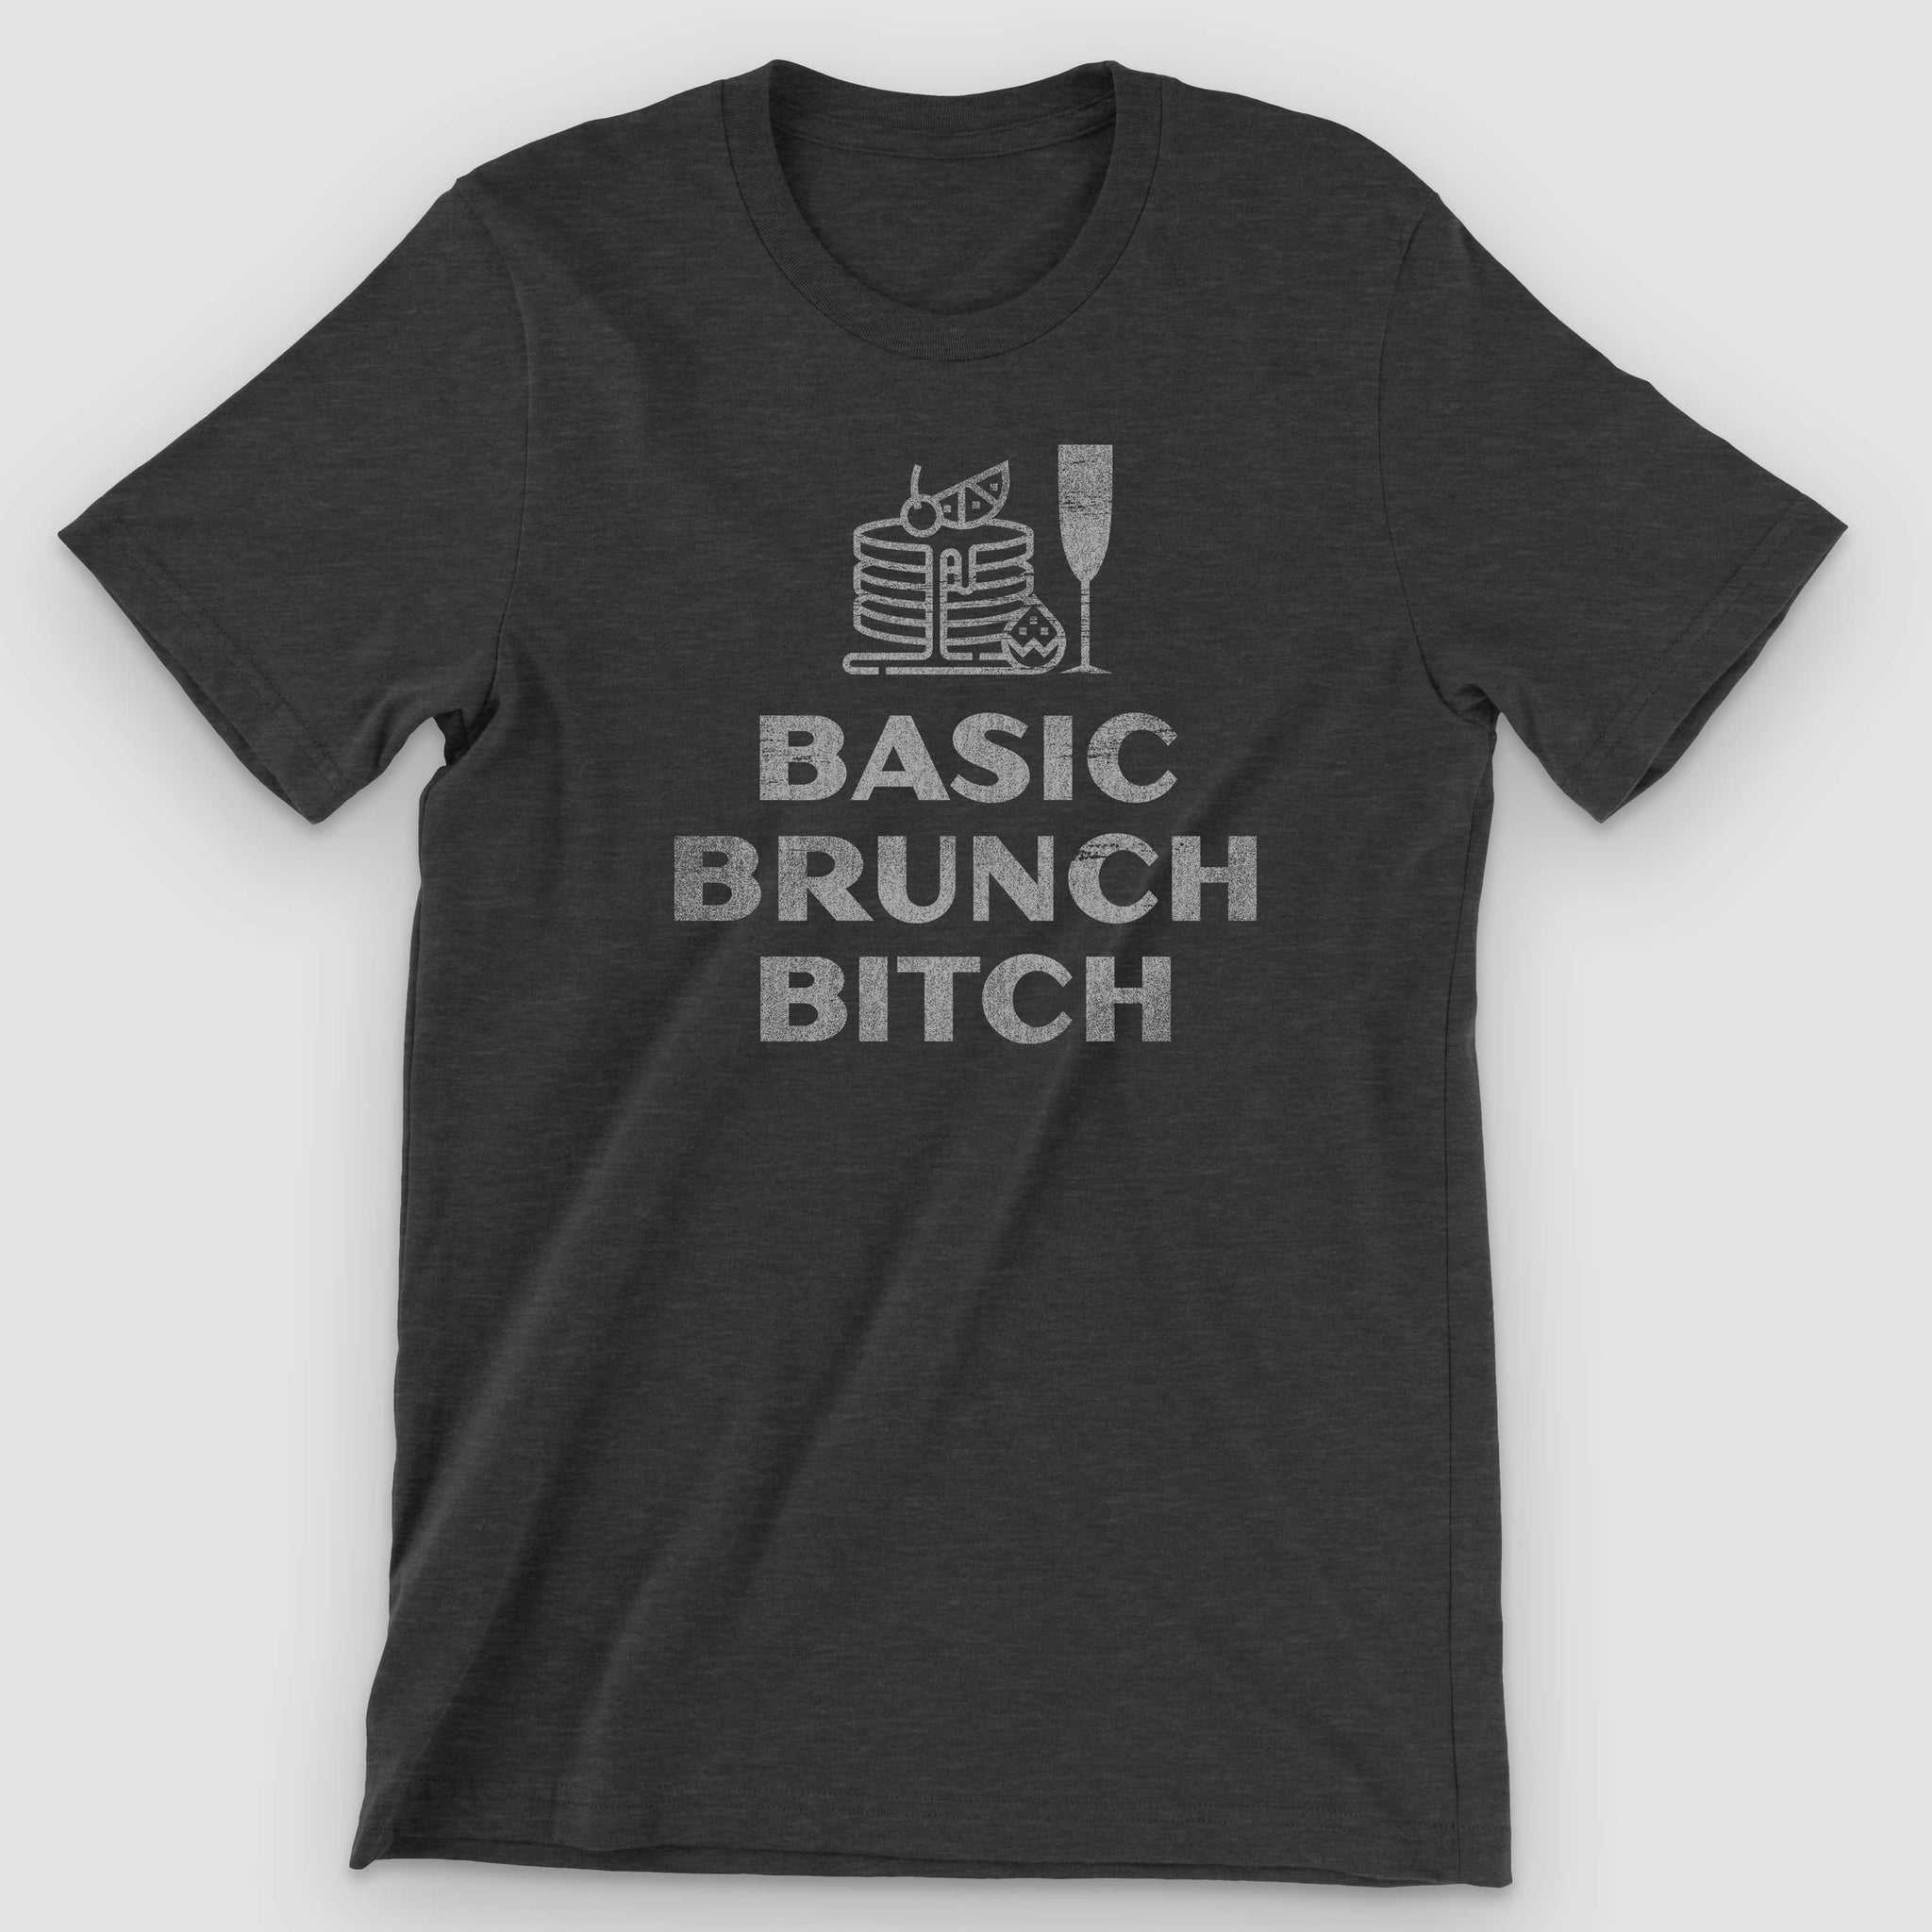 Basic Brunch Bitch Graphic T-Shirt